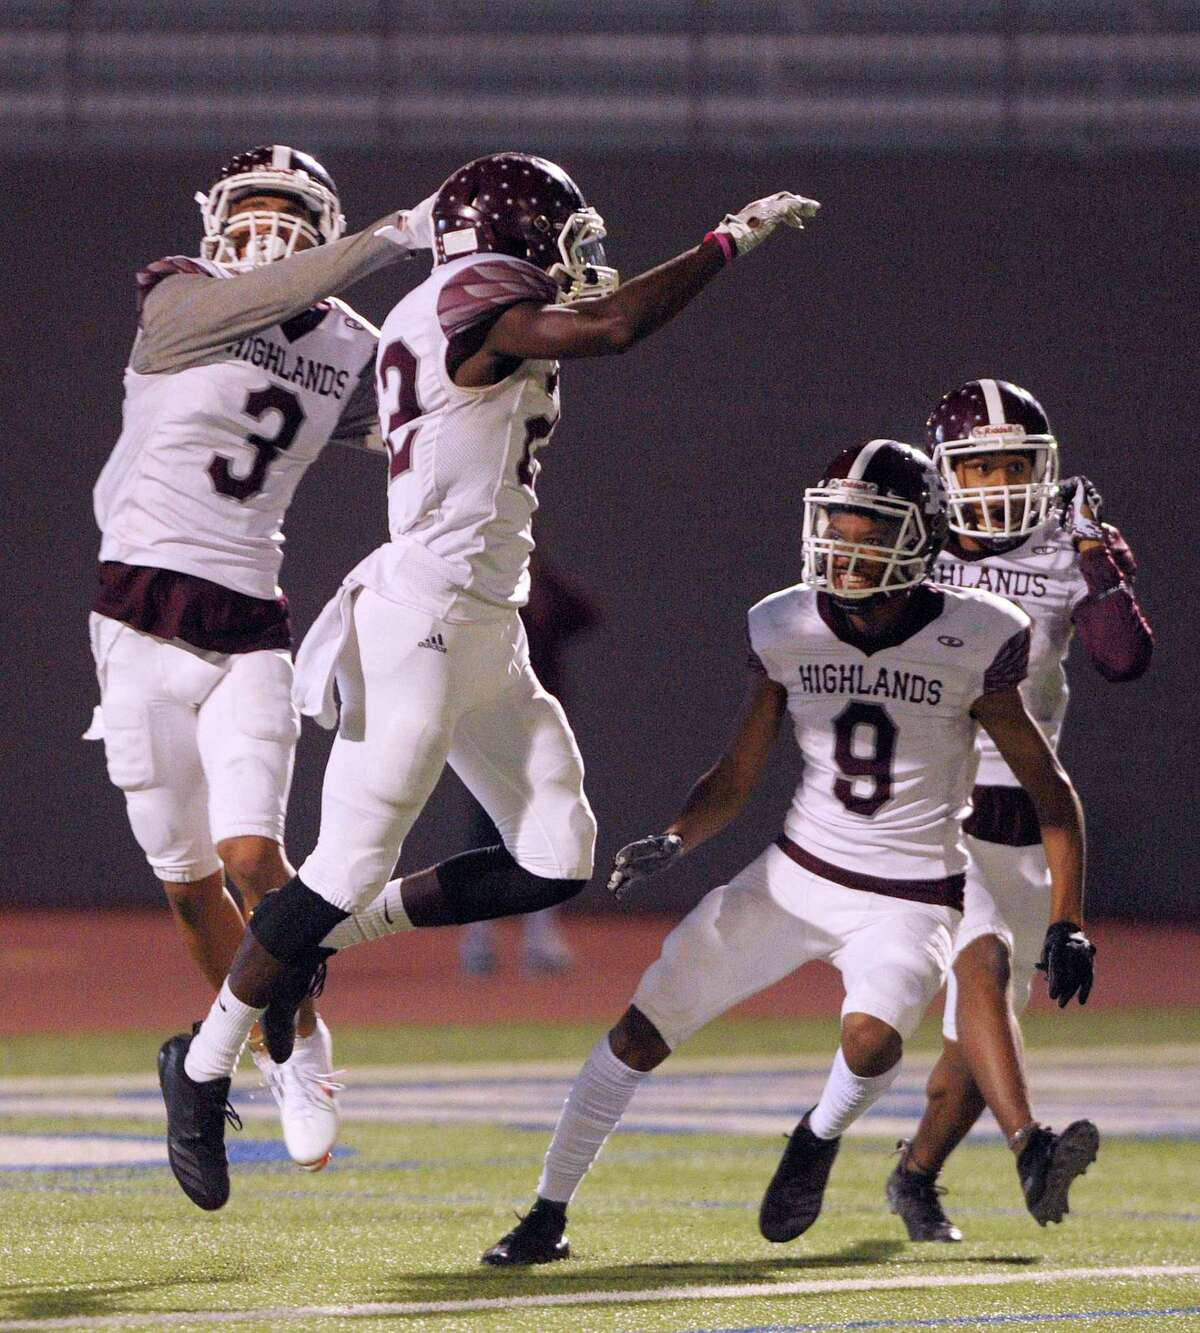 D'Marrion Gonzales, second from left, of Highlands, is mobbed by teammates Dre'Chan Moody (3) and Eric Rodriguez (8) after scoring on the opening kickoff against Brackenridge during high school football action at Alamo Stadium on Thursday, Nov. 8, 2018.